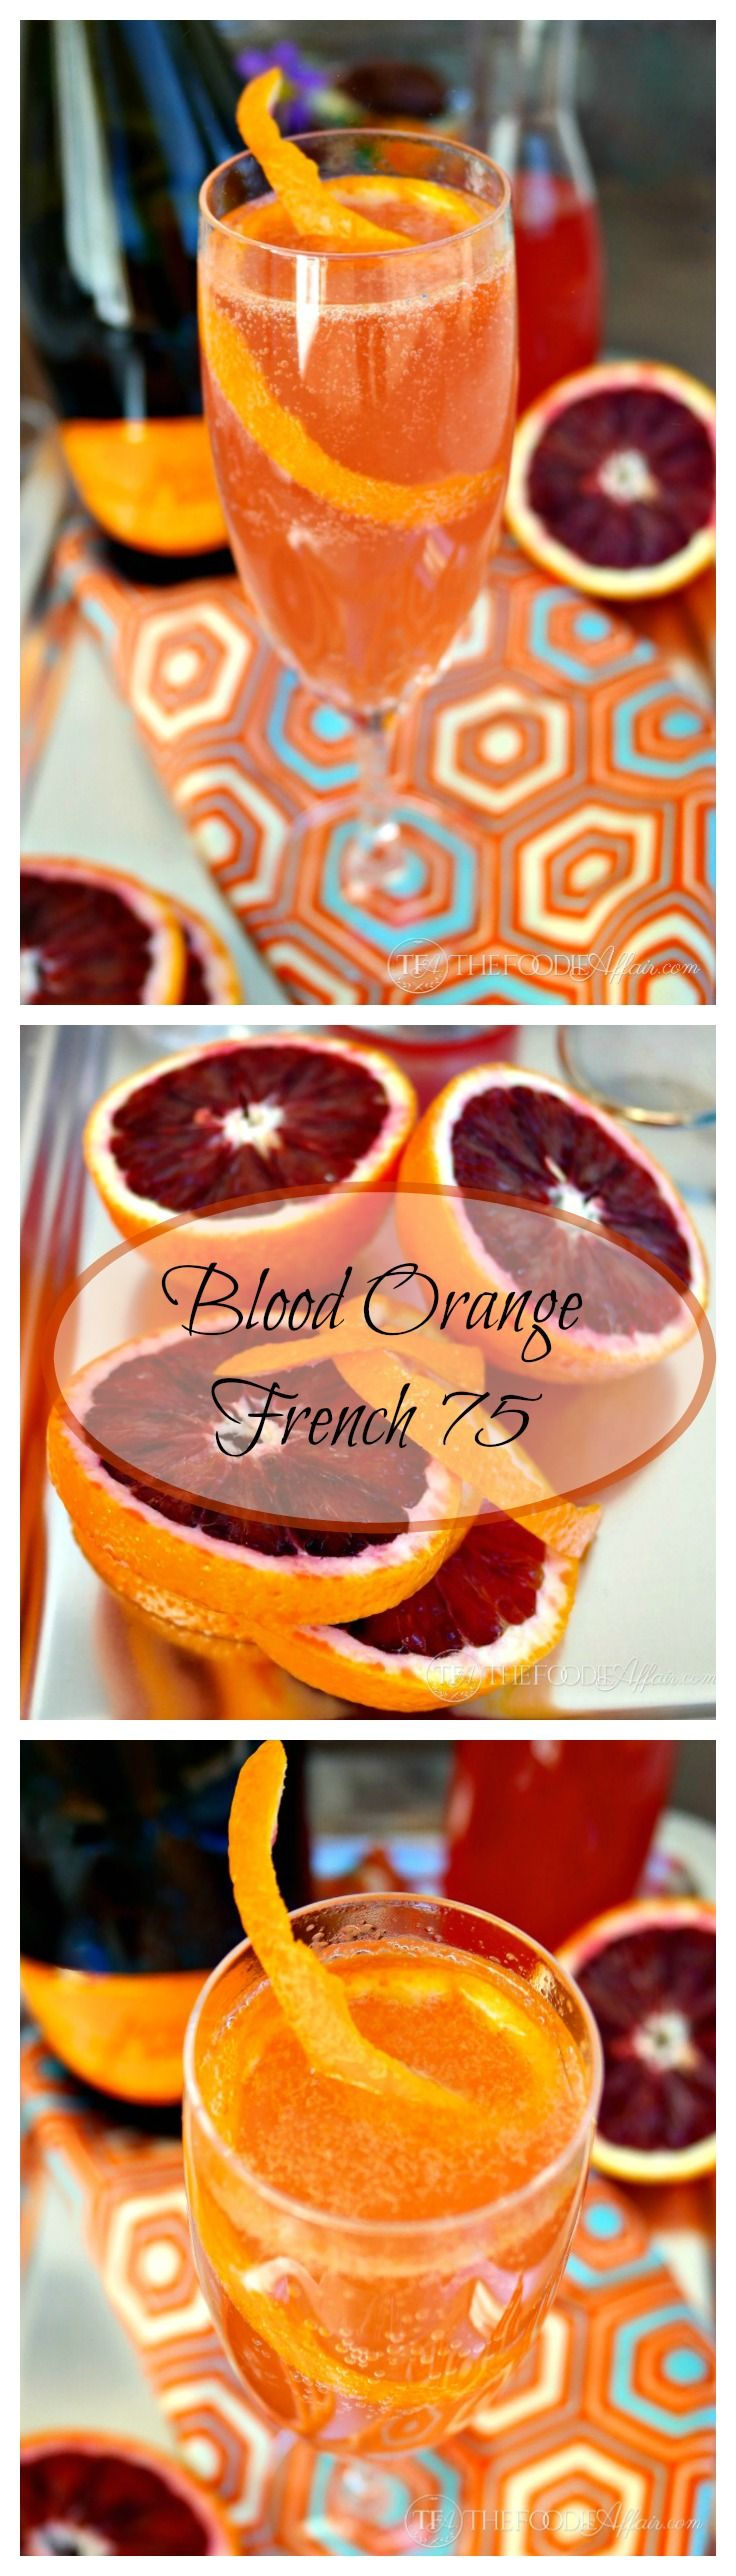 Blood Orange French 75 is a great celebratory cocktail! French 75 classic cocktail made with gin and champagne and lemon juice. Instead of using lemons for the citrus, vibrant blood oranges complete this drink. (orange cocktail drinks)